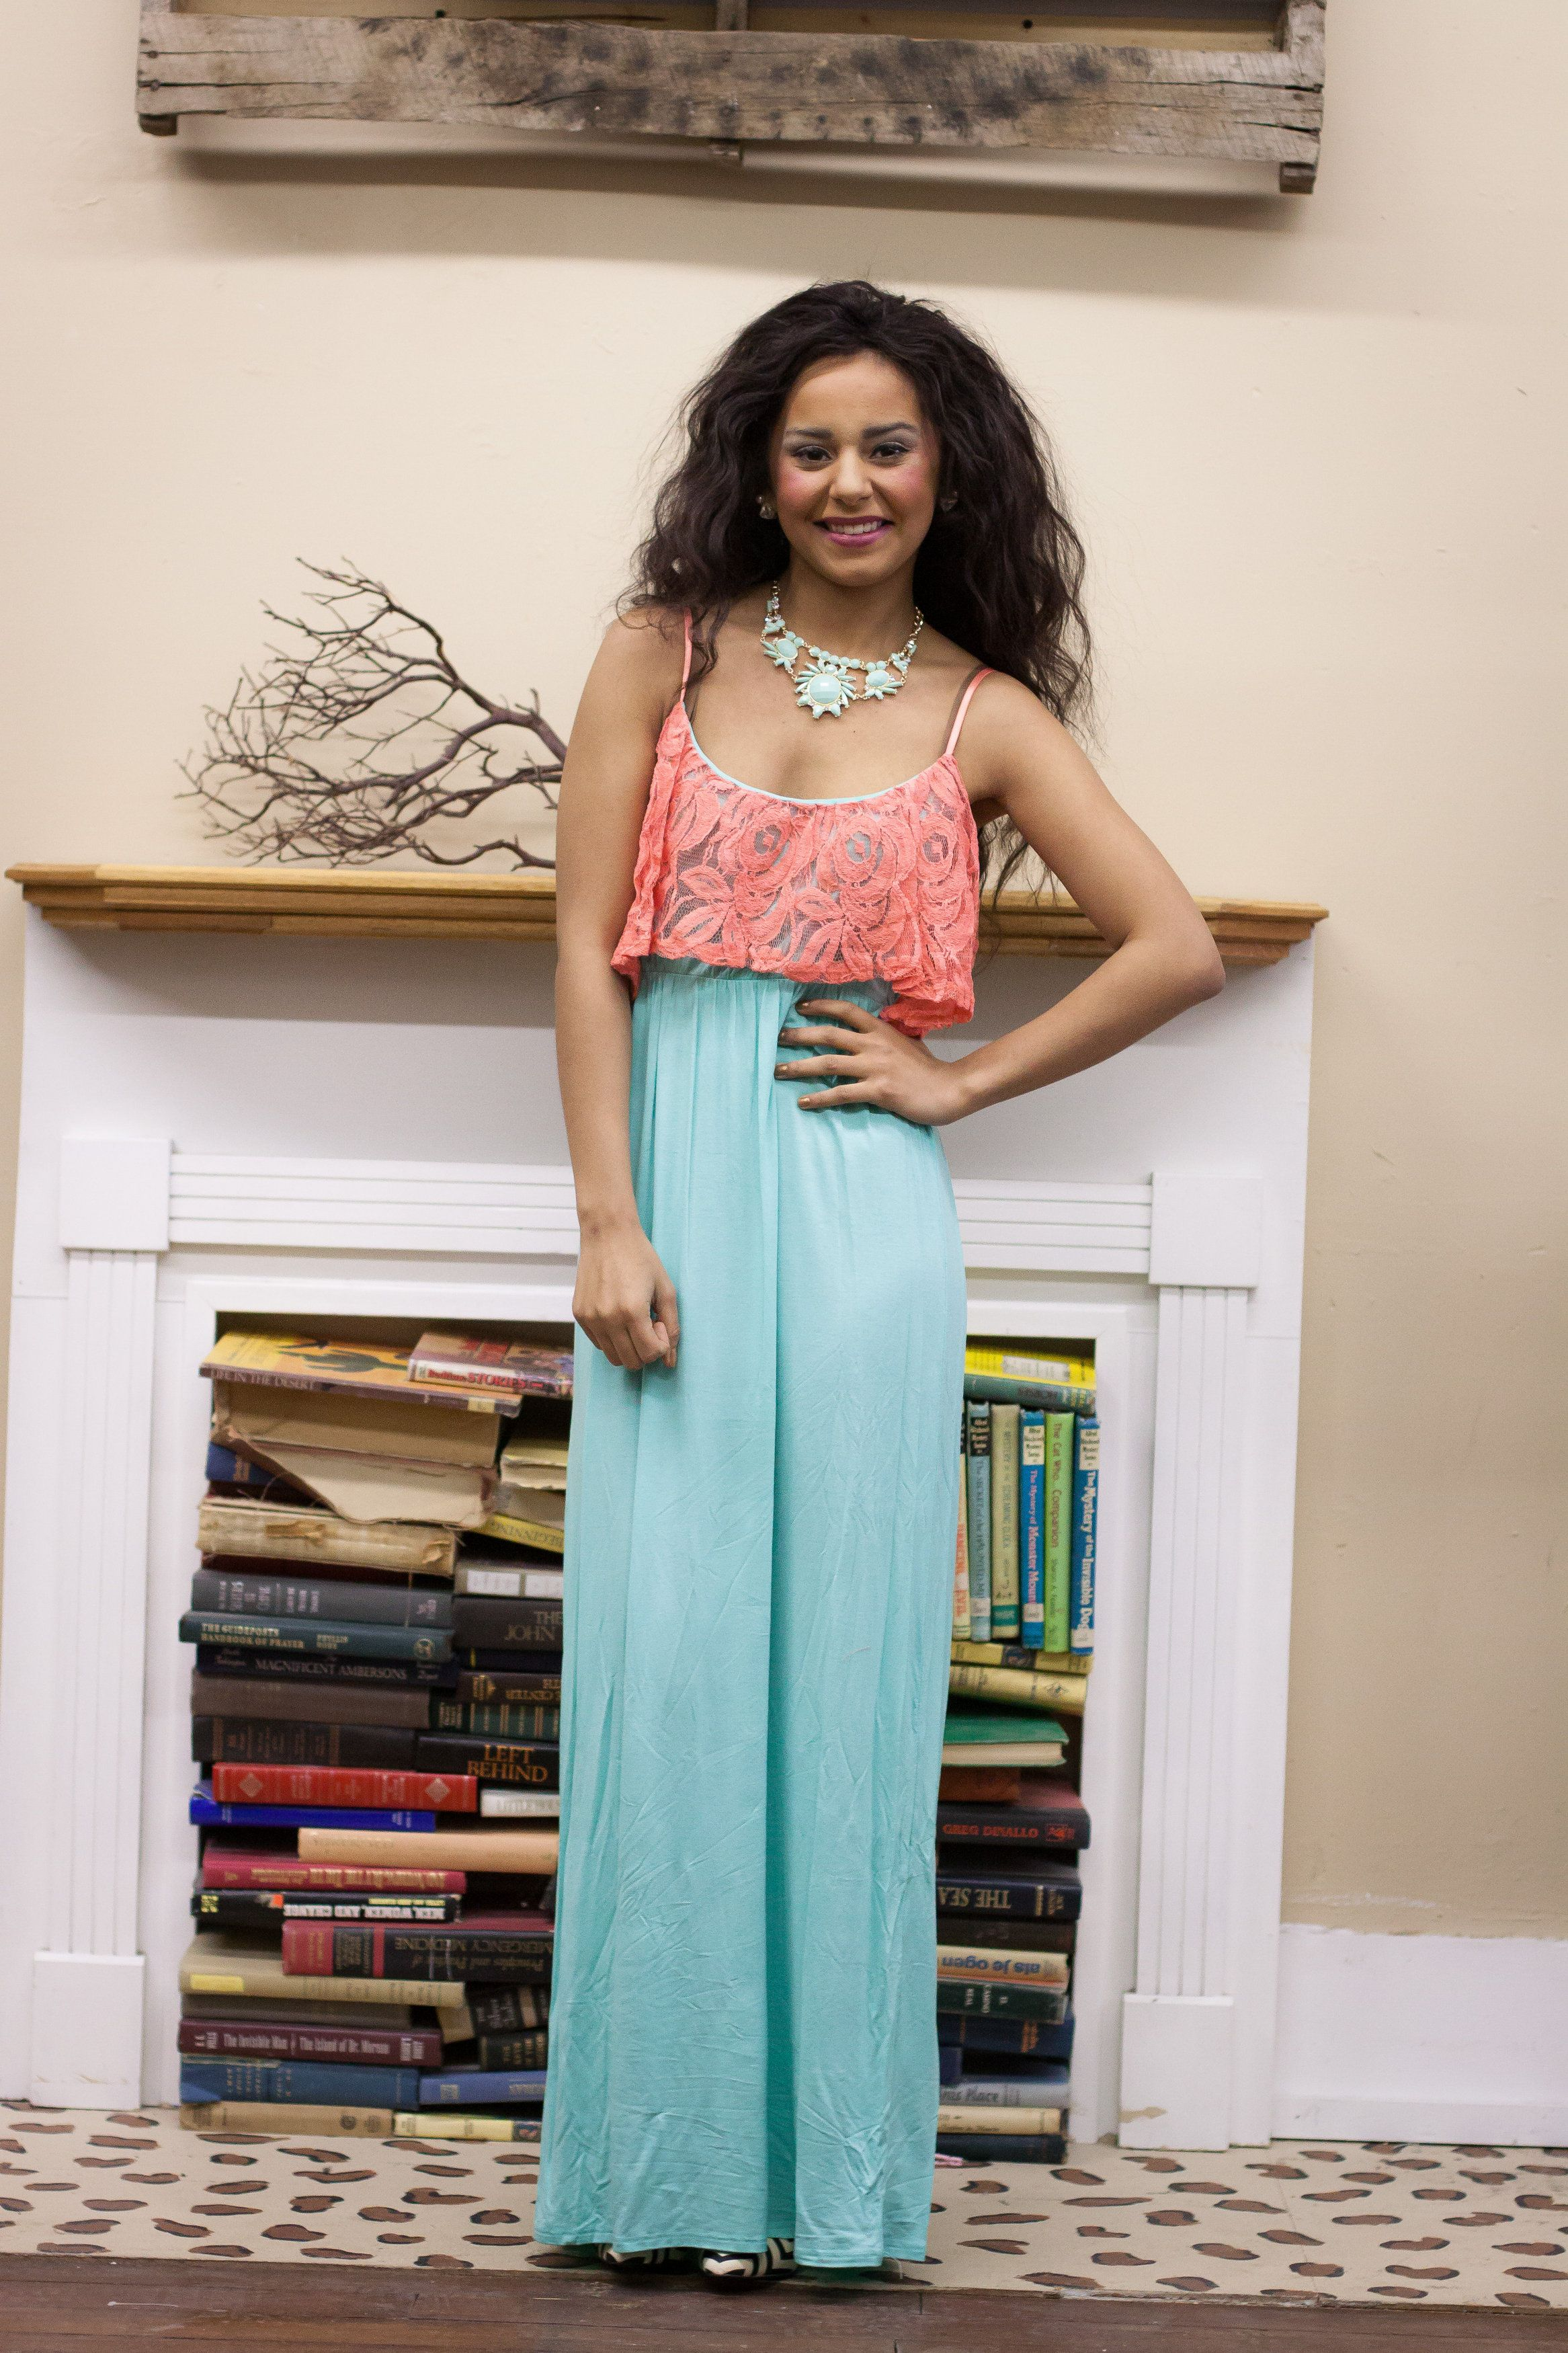 Dresses, Maxi Dresses! Fun cute dresses, tops, at affordable prices!  Ladies you will love it!  www.facebook.com/badhabitboutique